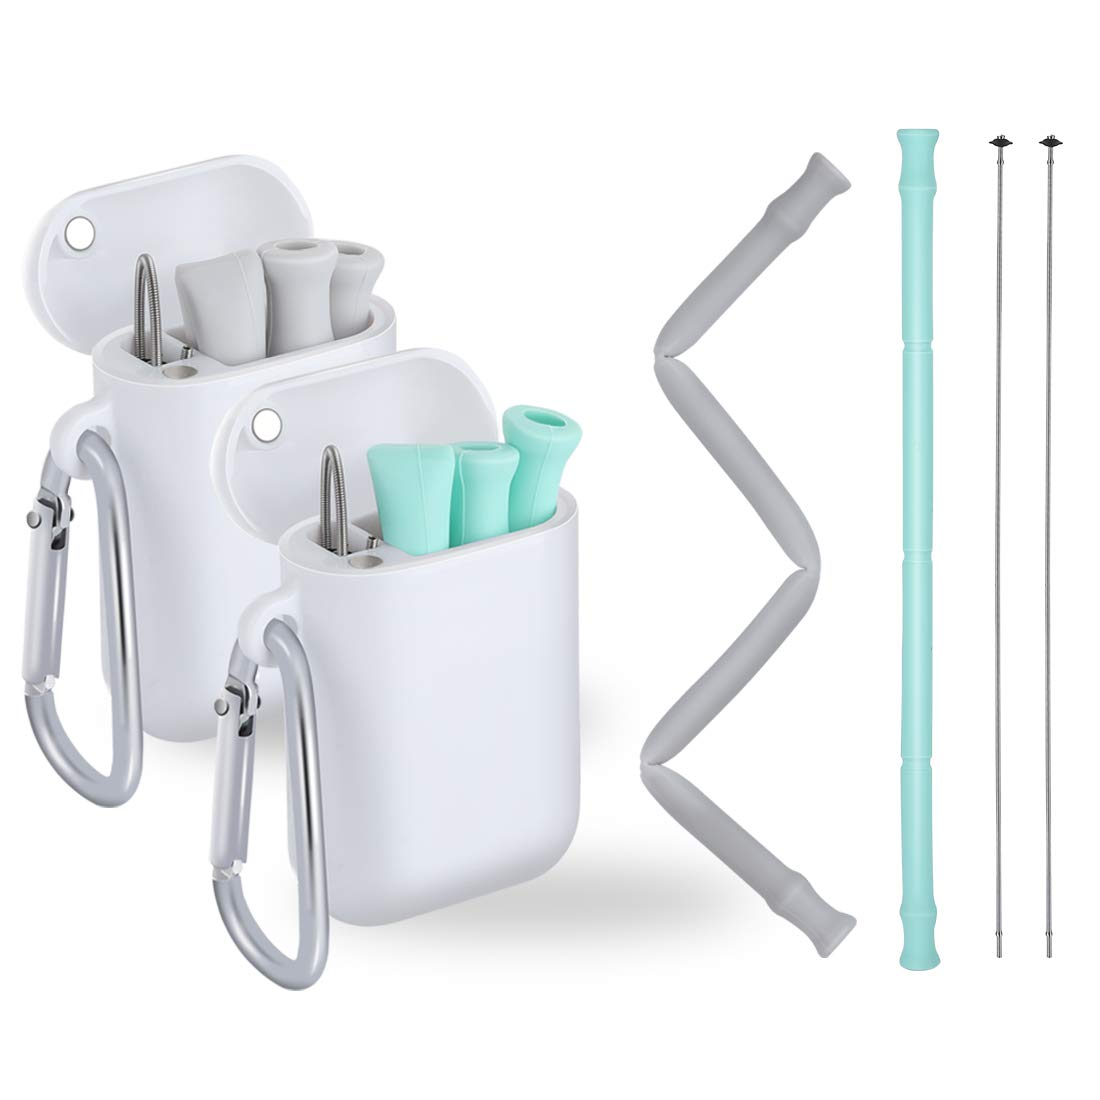 TINANA Reusable Silicone Collapsible Straws Portable Drinking Straw Flexible Straws with Carrying Case and Cleaning Brush, BPA-Free(2Pack) (gray+green)